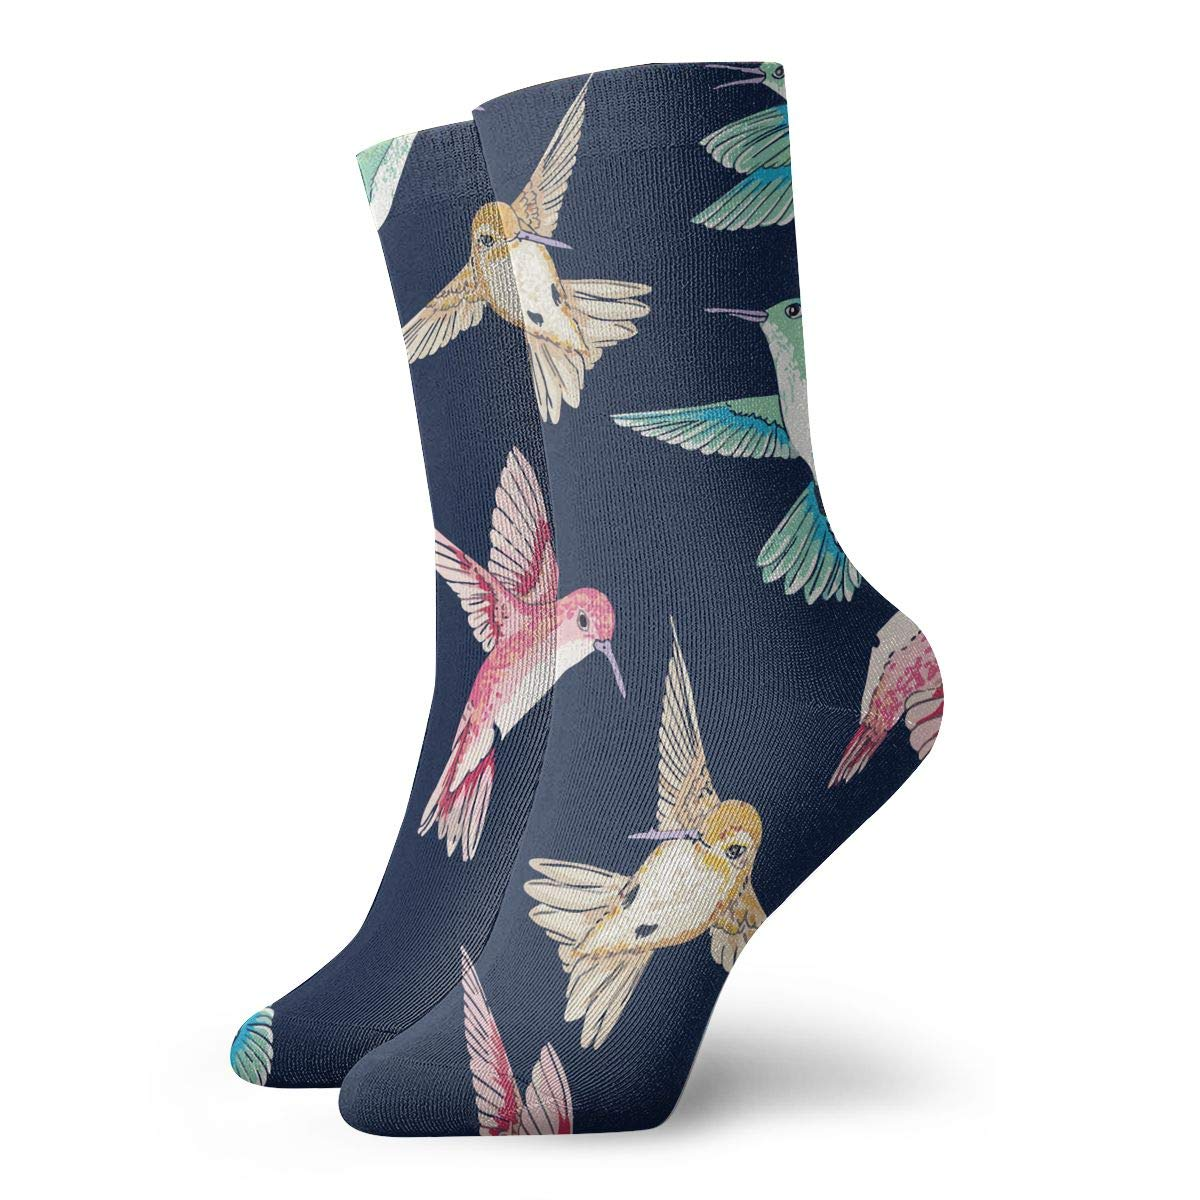 Magpie Unisex Funny Casual Crew Socks Athletic Socks For Boys Girls Kids Teenagers